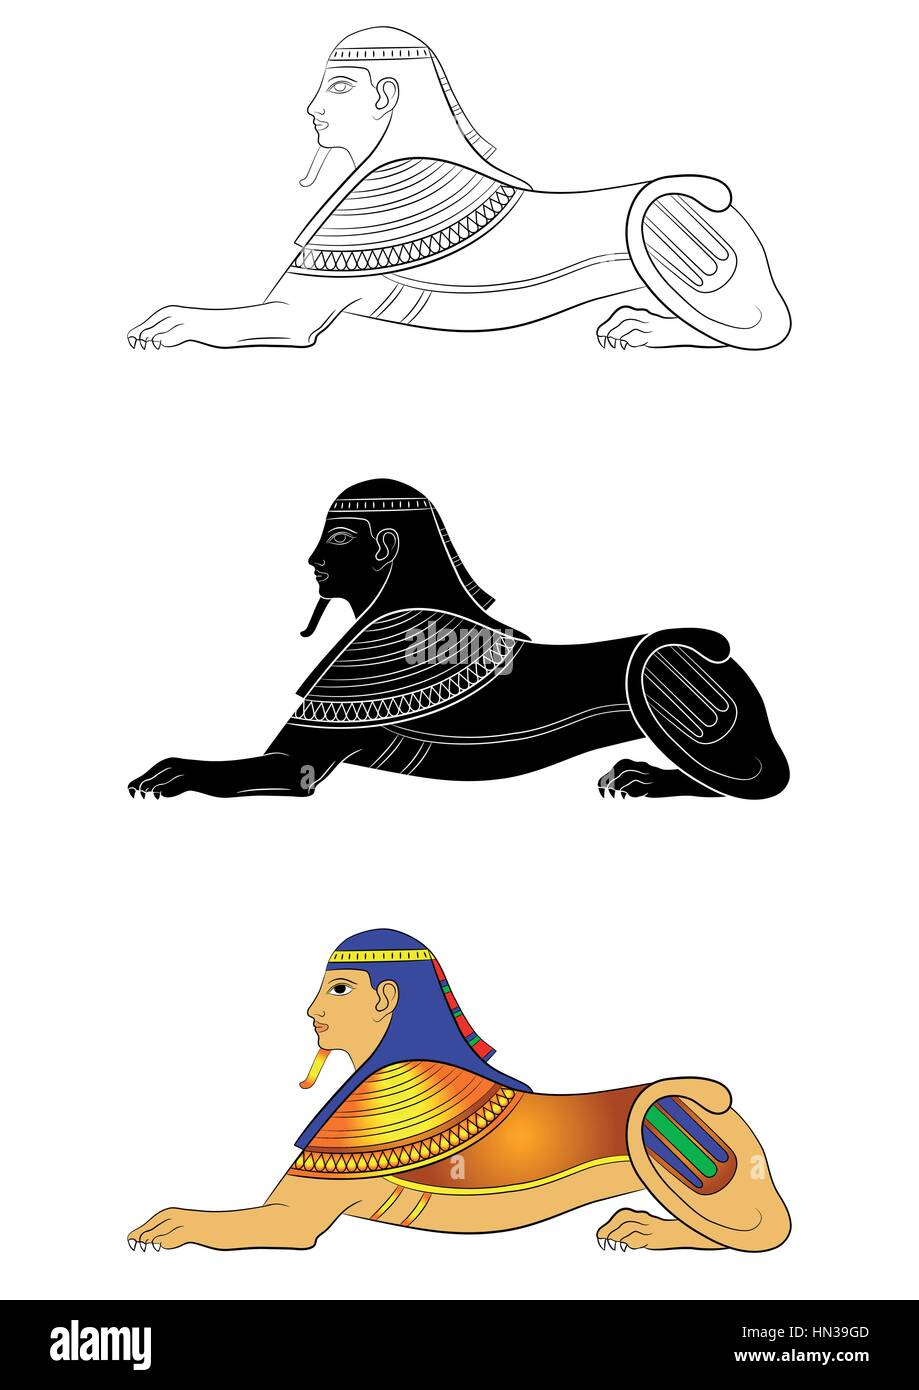 Sphinx Mythical Creature Of Ancient Egypt Stock Vector Art